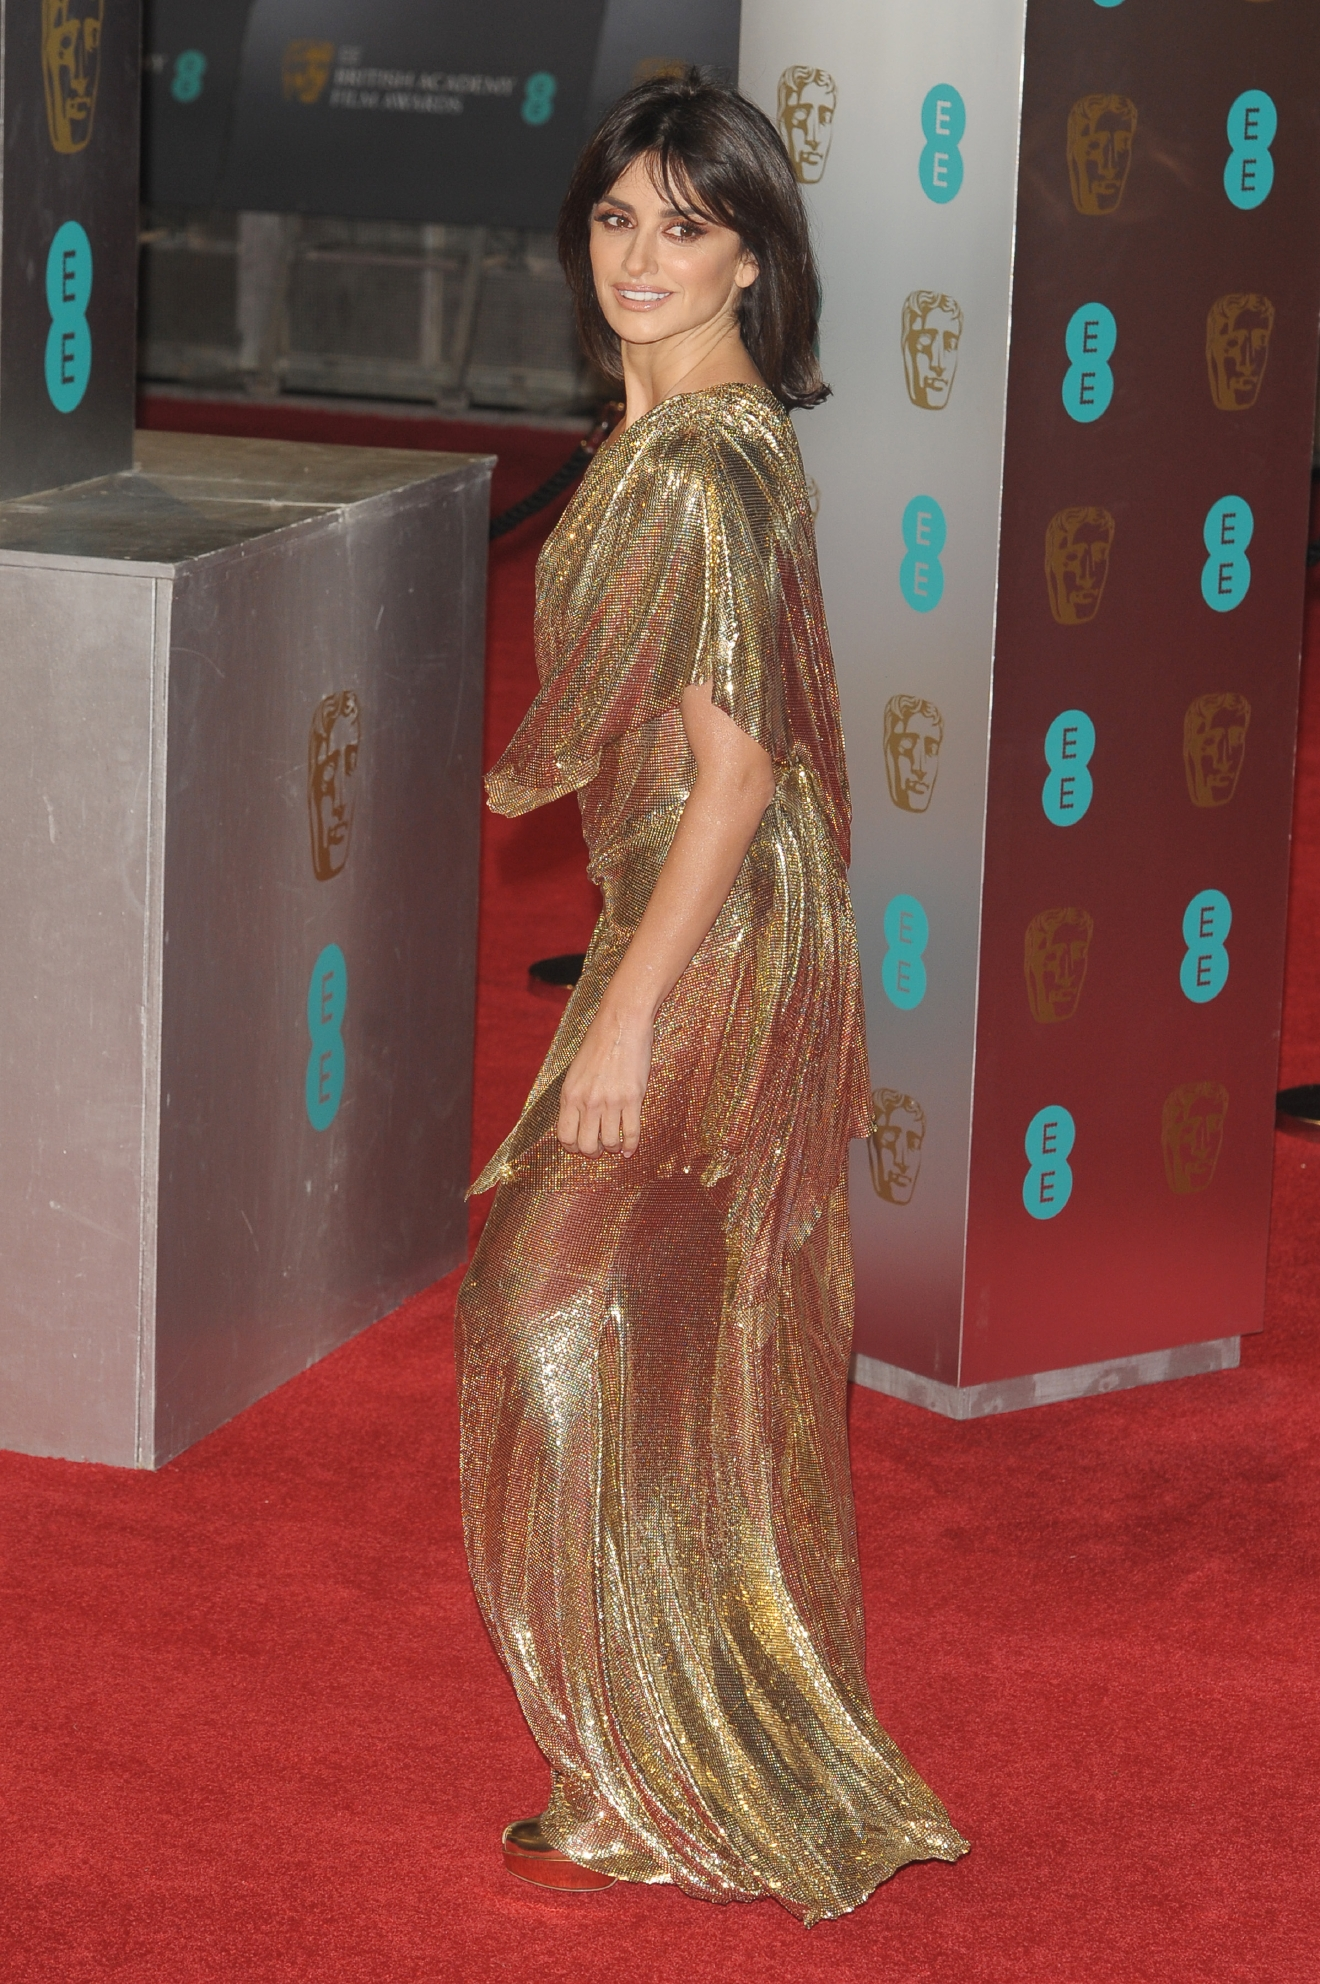 The 2017 EE British Academy Film Awards held at the Royal Albert Hall - Arrivals                                    Featuring: Penelope Cruz                  Where: London, United Kingdom                  When: 12 Feb 2017                  Credit: Zibi/WENN.com